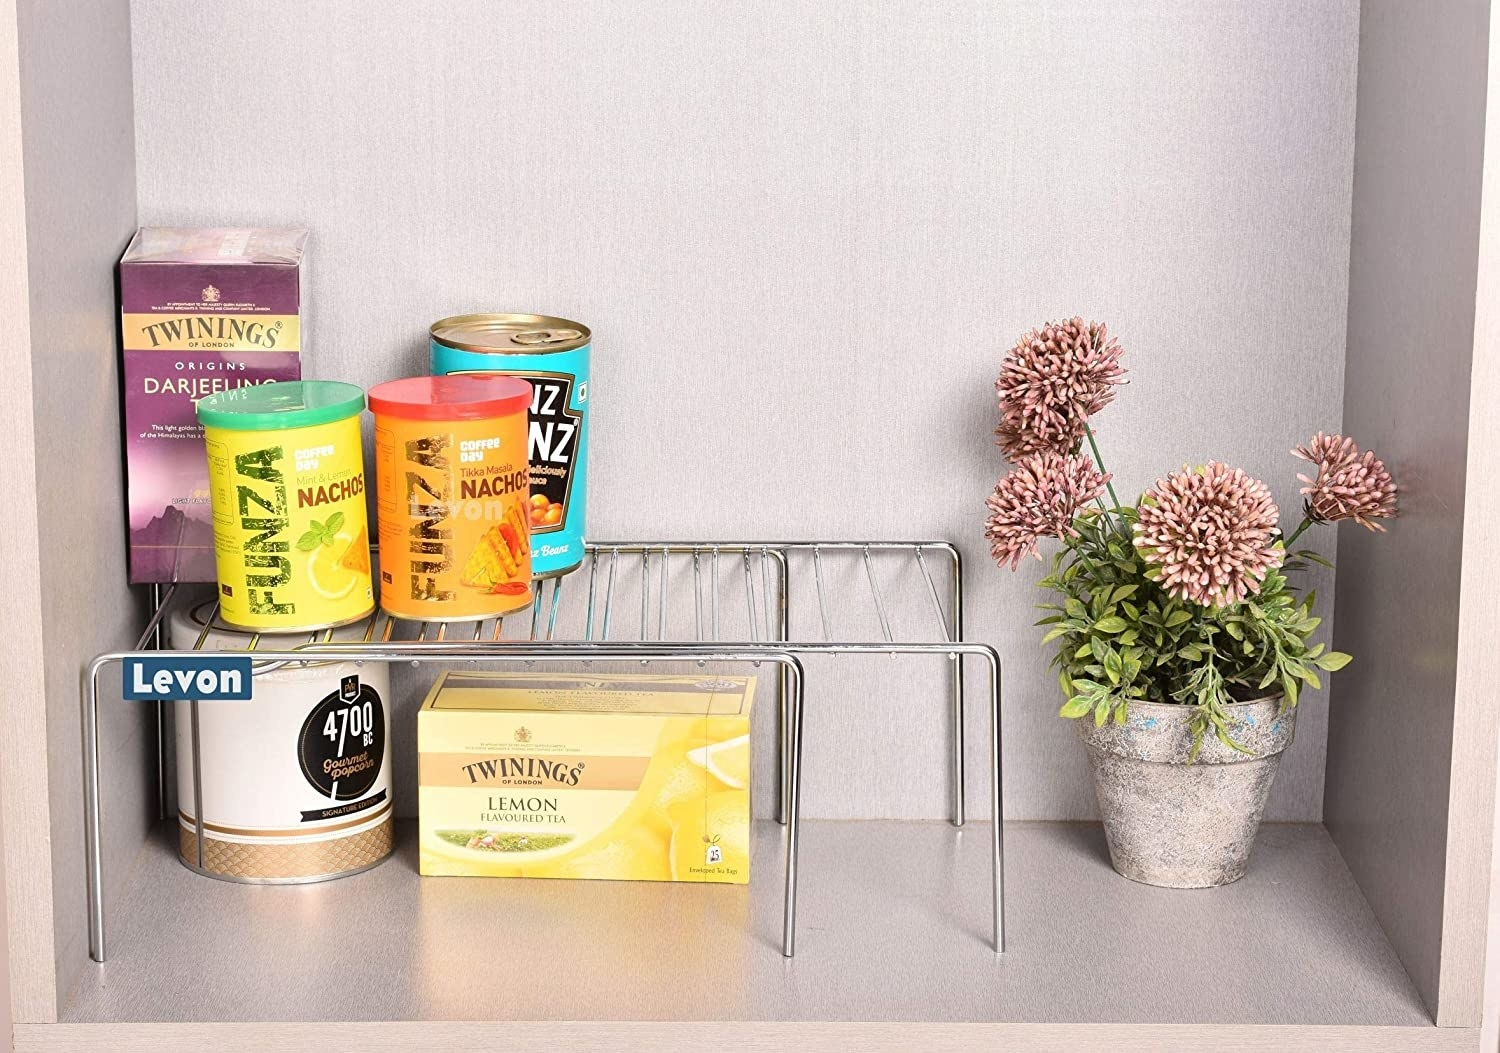 An expandable rack with food items on it next to a flower pot.